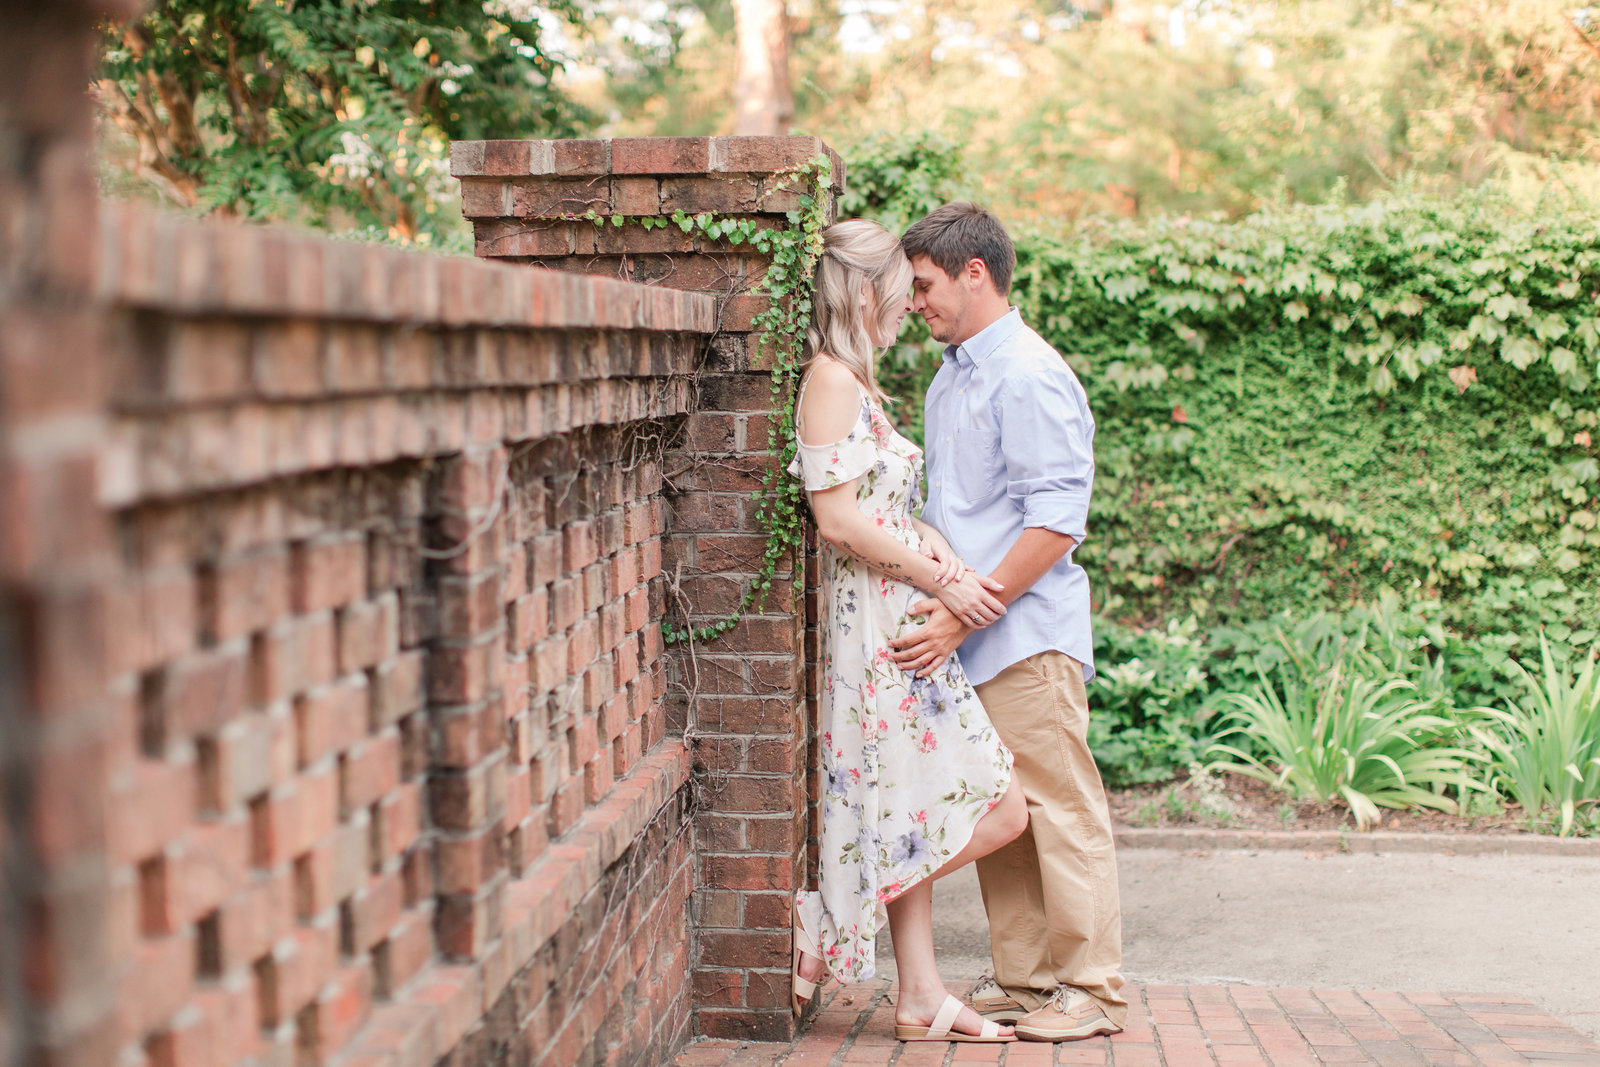 Jennifer B Photography-Sandhills Horticultural Gardens Engagement-Pinehurst NC-Cody and Kayla-2019-0090